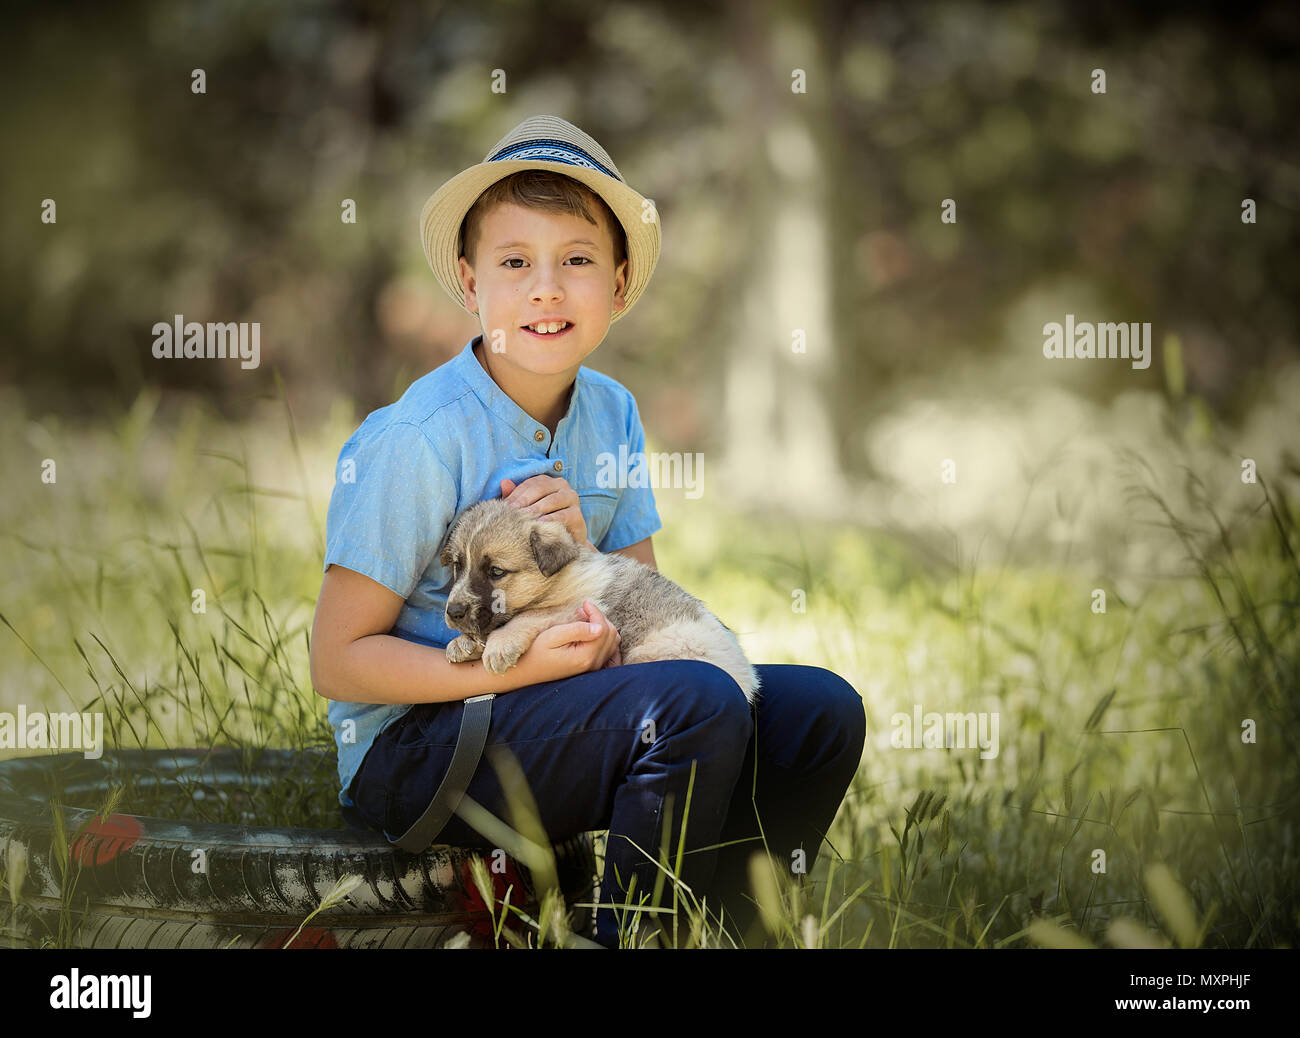 cute boy with a dog Stock Photo